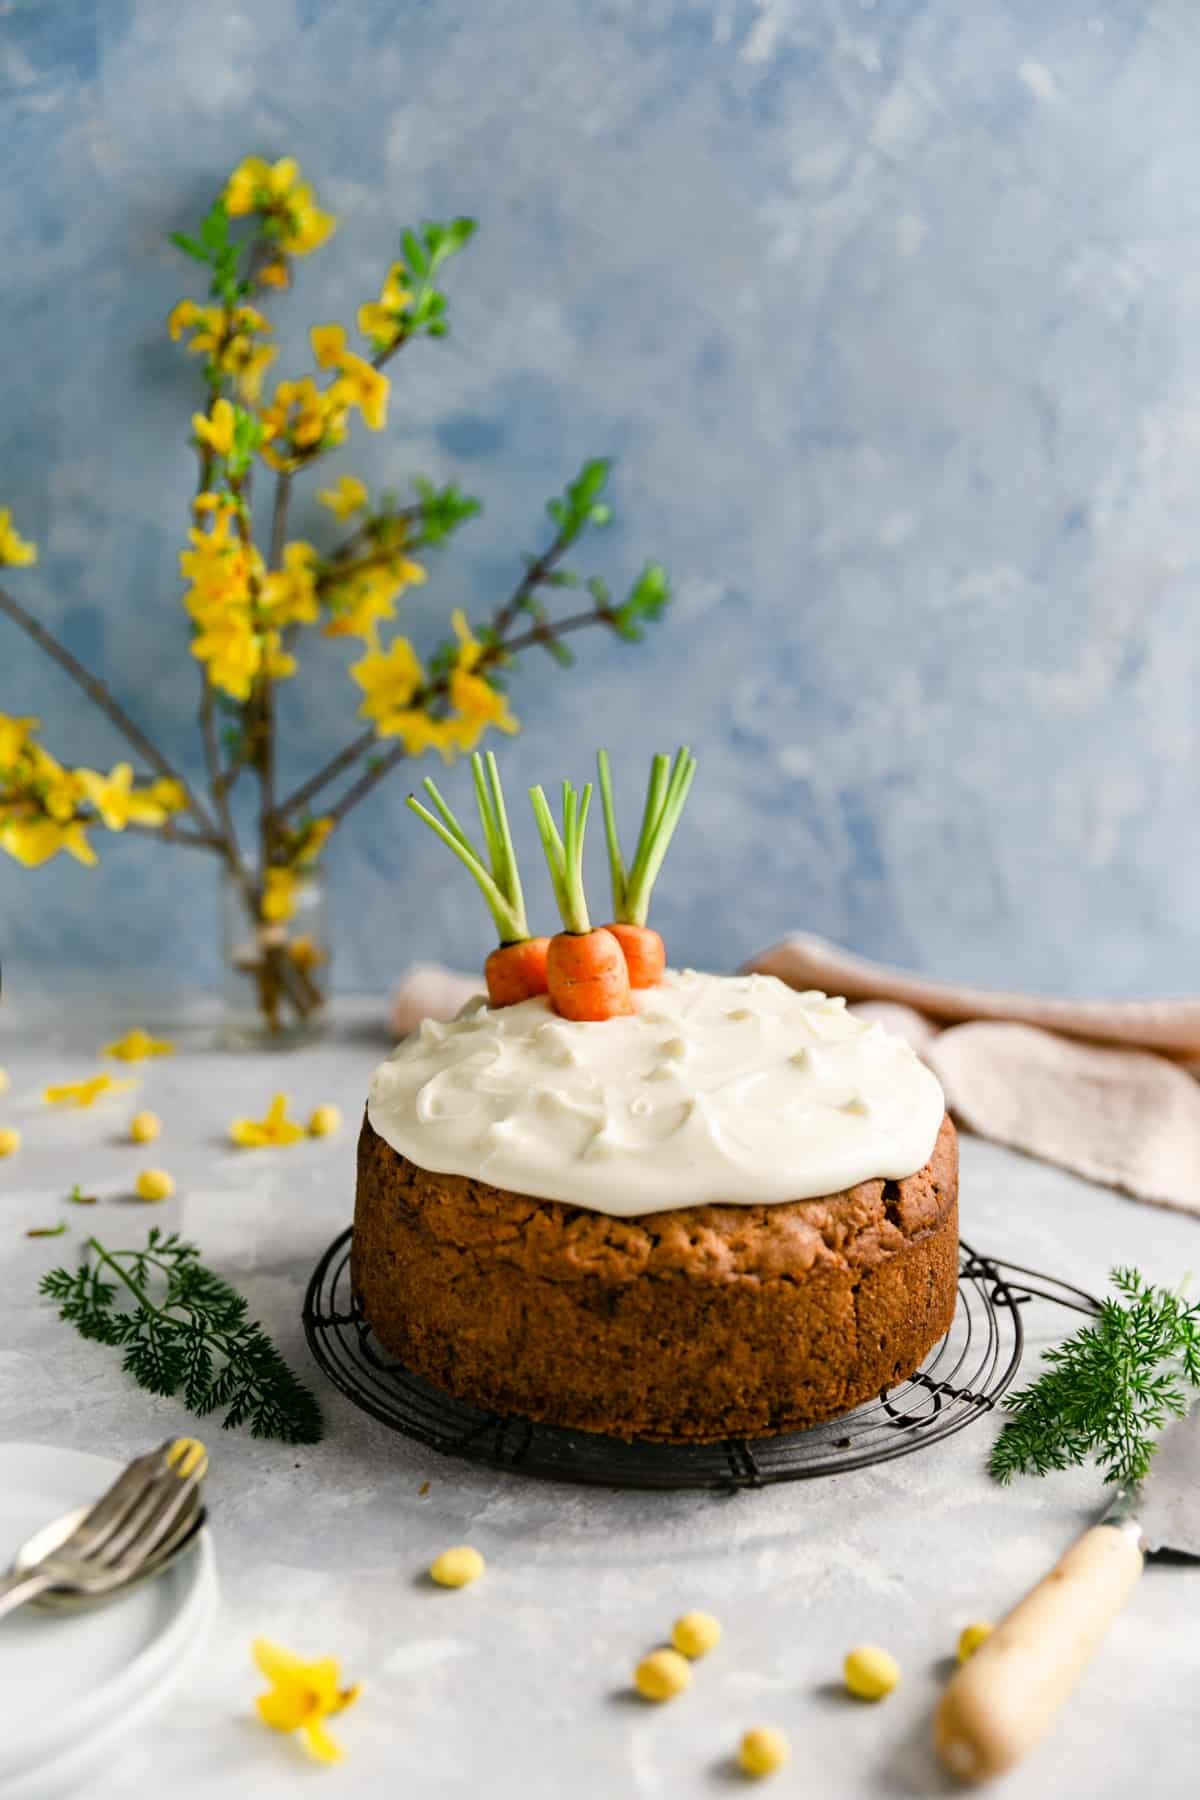 Vegan carrot cake topped with cream cheese frosting and some carrot tops